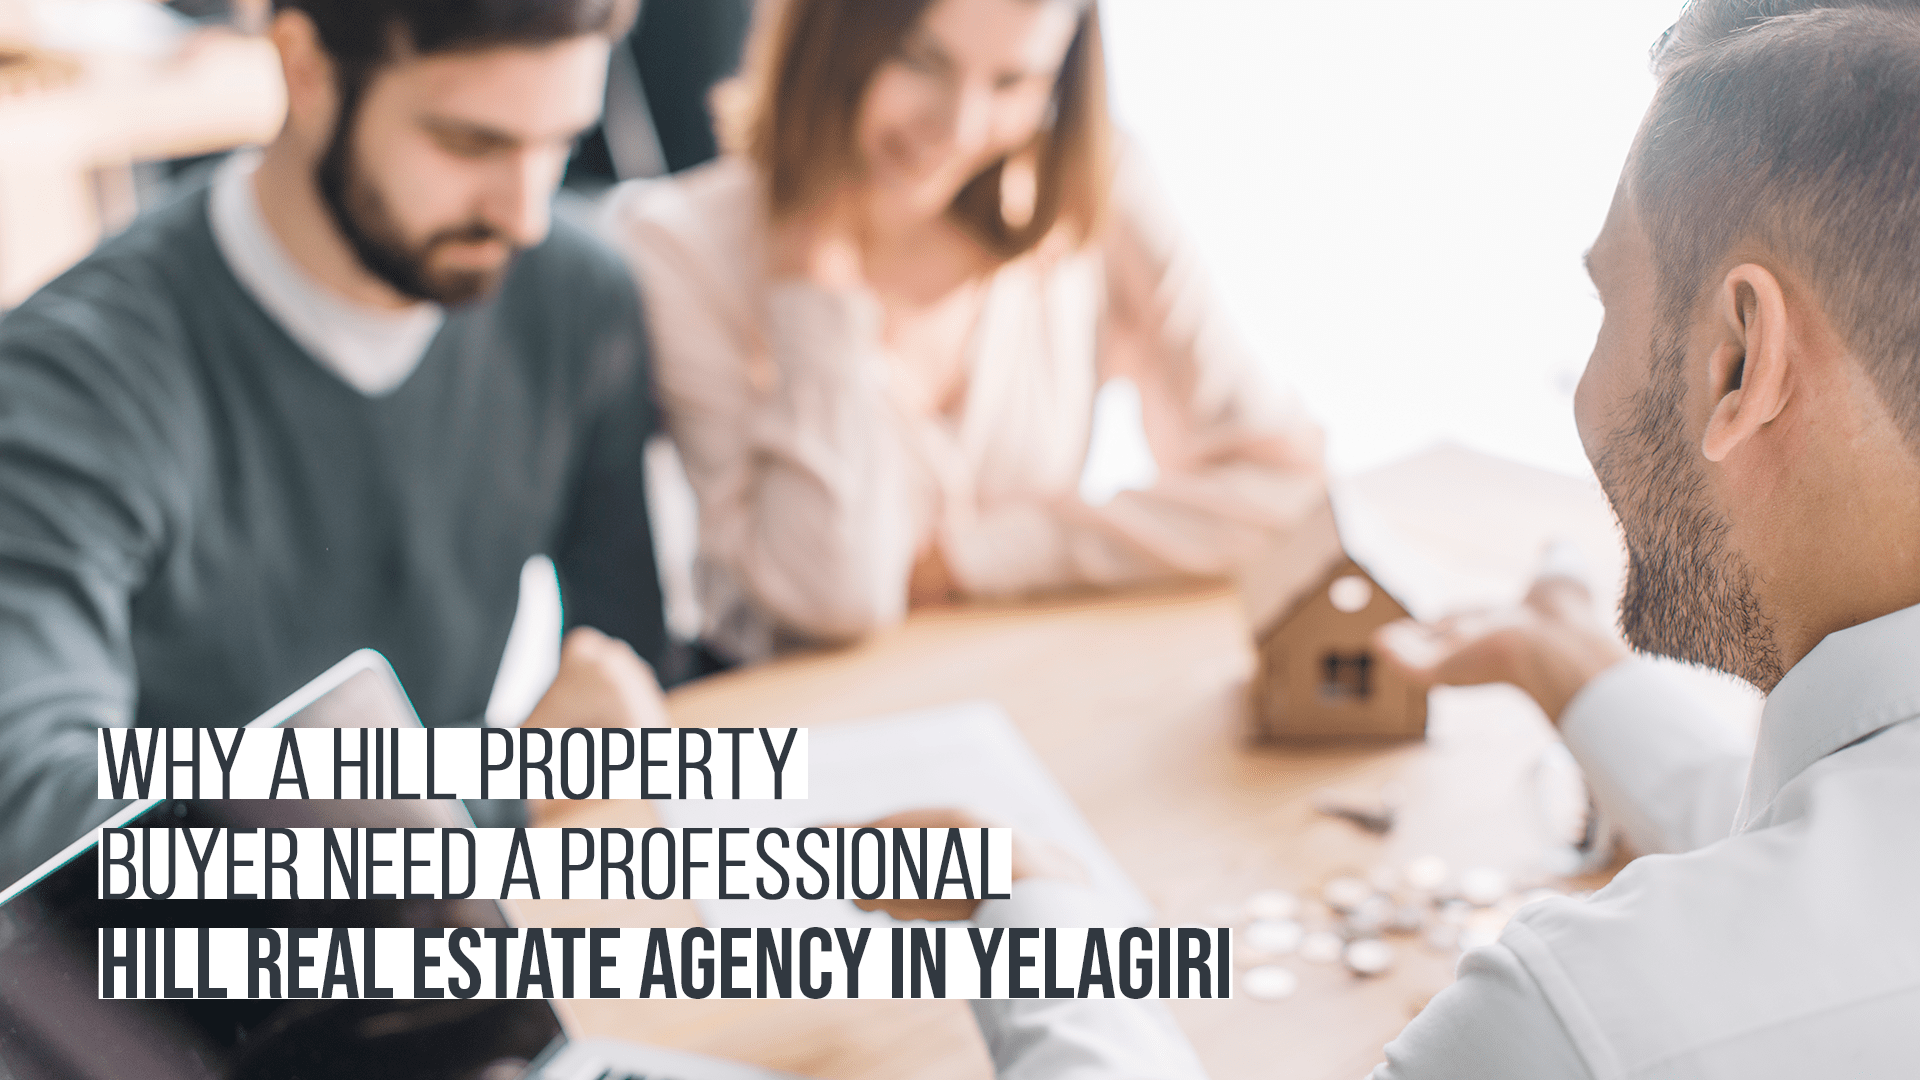 Why a Property Buyer need A  Professional Hill Real Estate Agency in Yelagiri?